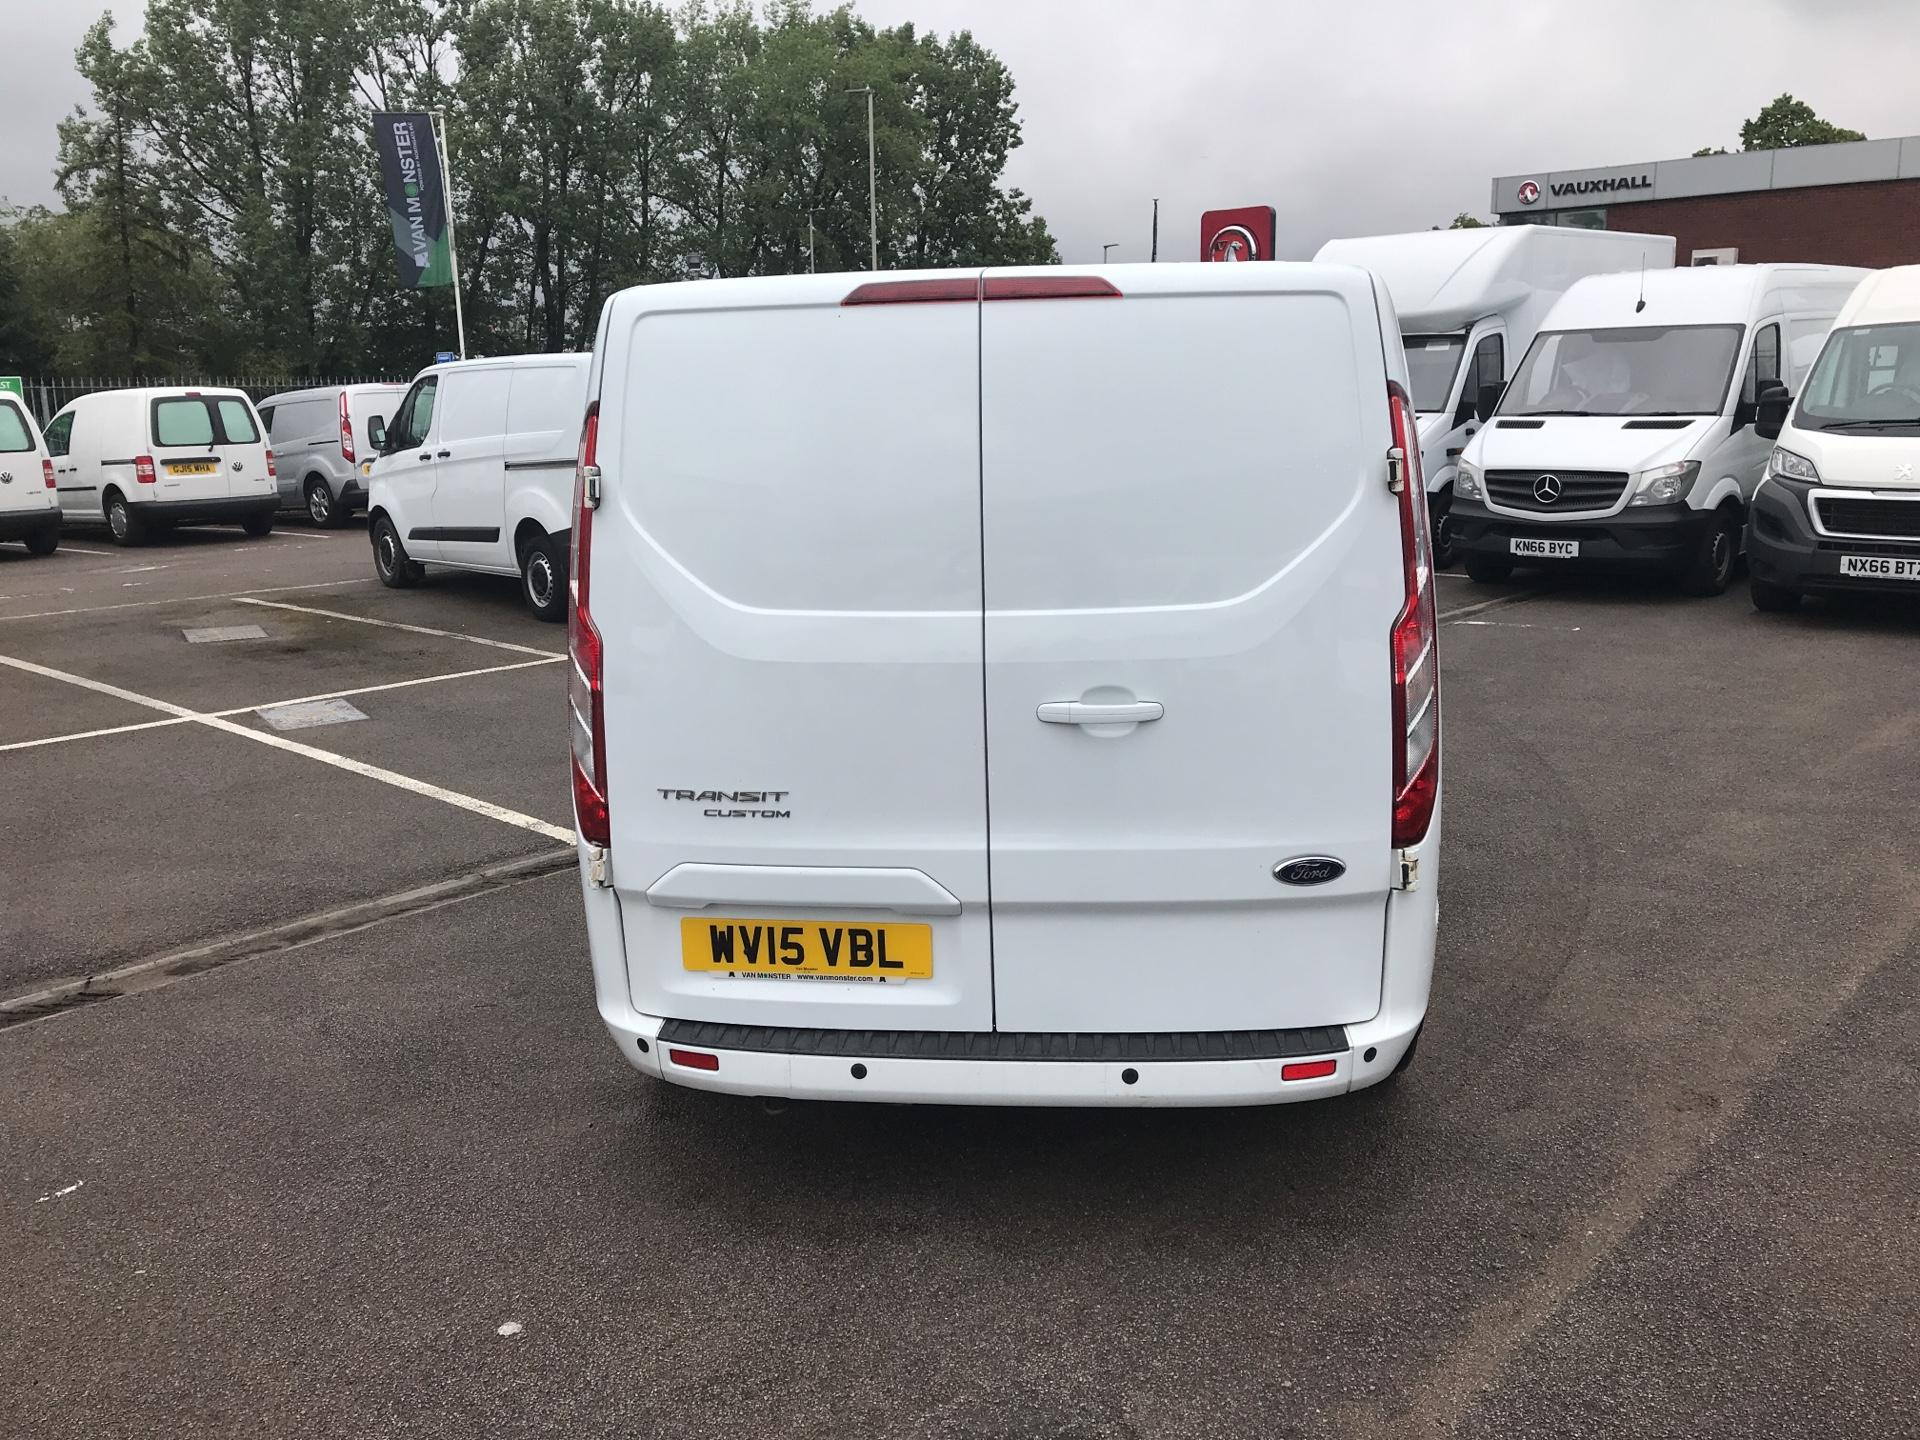 2015 Ford Transit Custom  290 L2 DIESEL FWD 2.2 TDCI 125PS LOW ROOF D/CAB LIMITED VAN EURO 5 (WV15VBL) Image 4